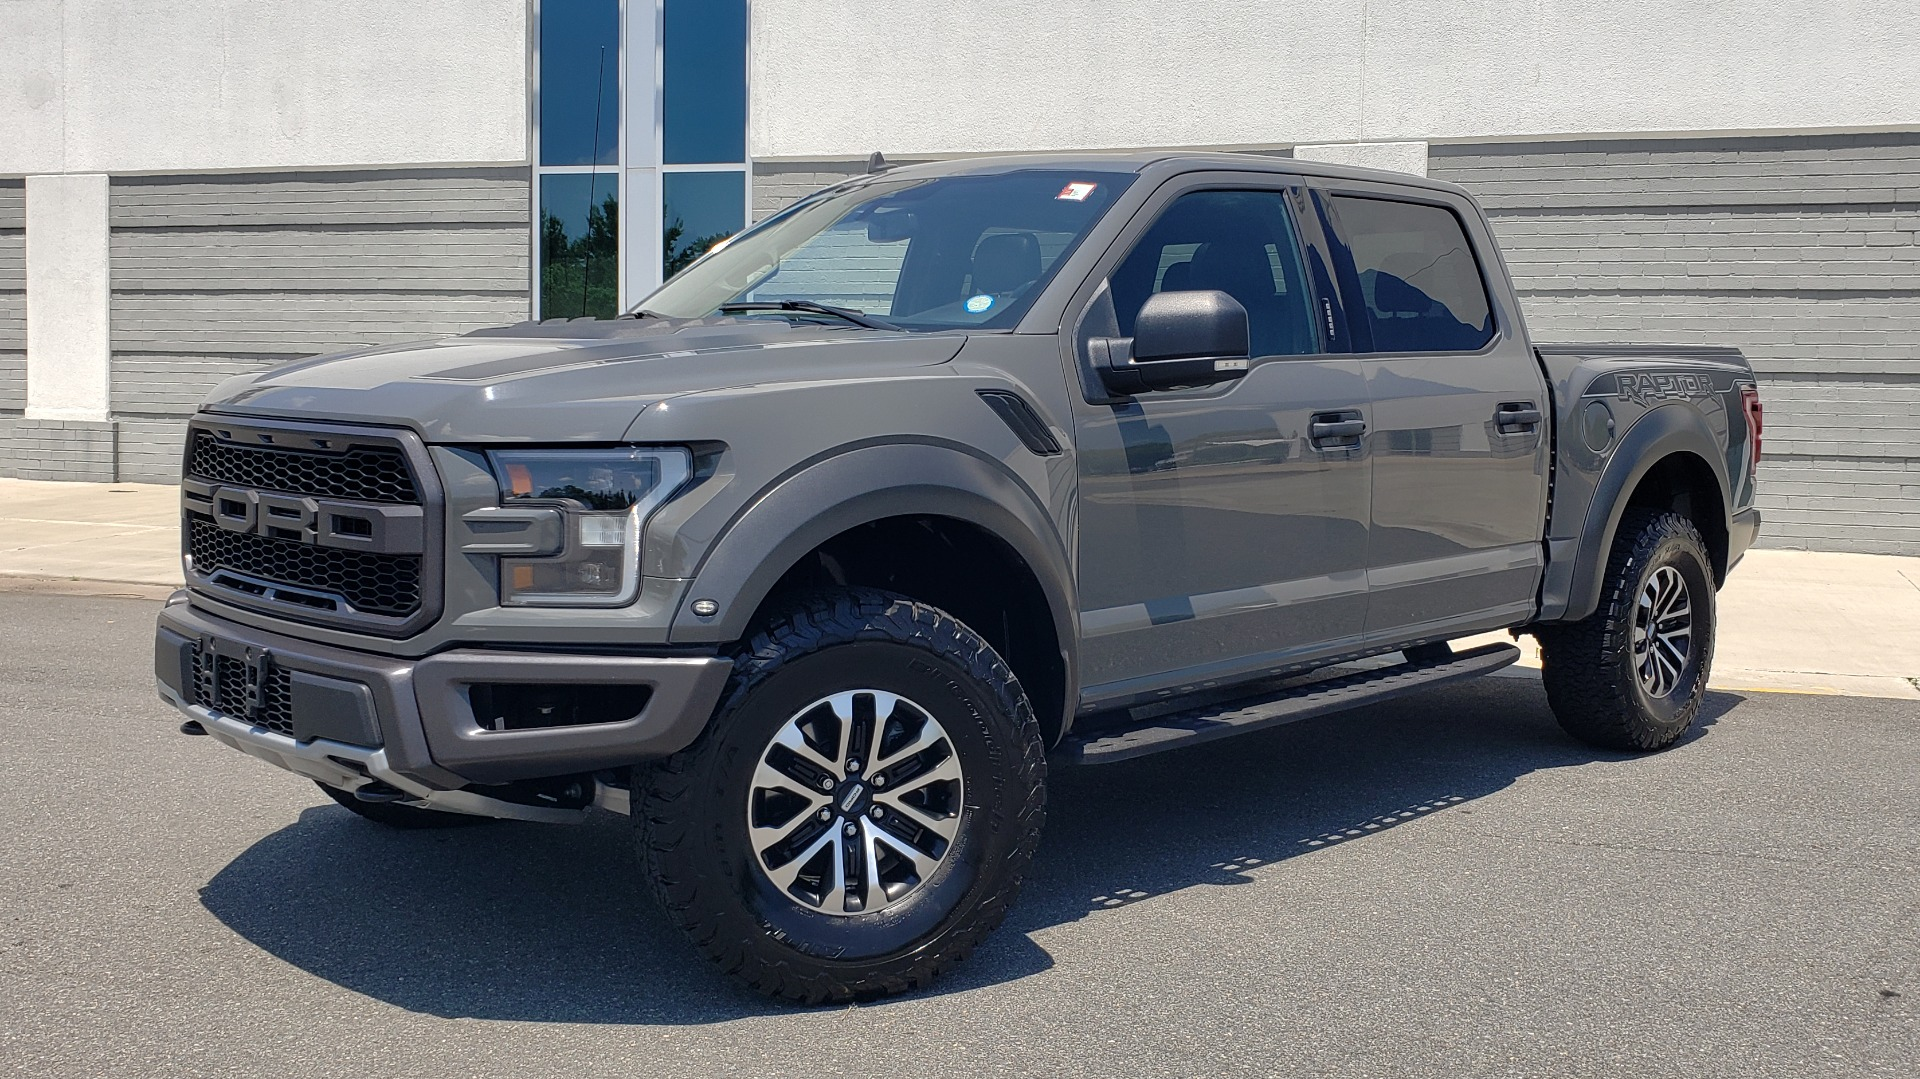 Used 2020 Ford F-150 RAPTOR 4X4 SUPERCREW / 3.5L ECOBOOST / 10-SPD AUTO / SUNROOF / REARVIEW for sale $82,500 at Formula Imports in Charlotte NC 28227 1